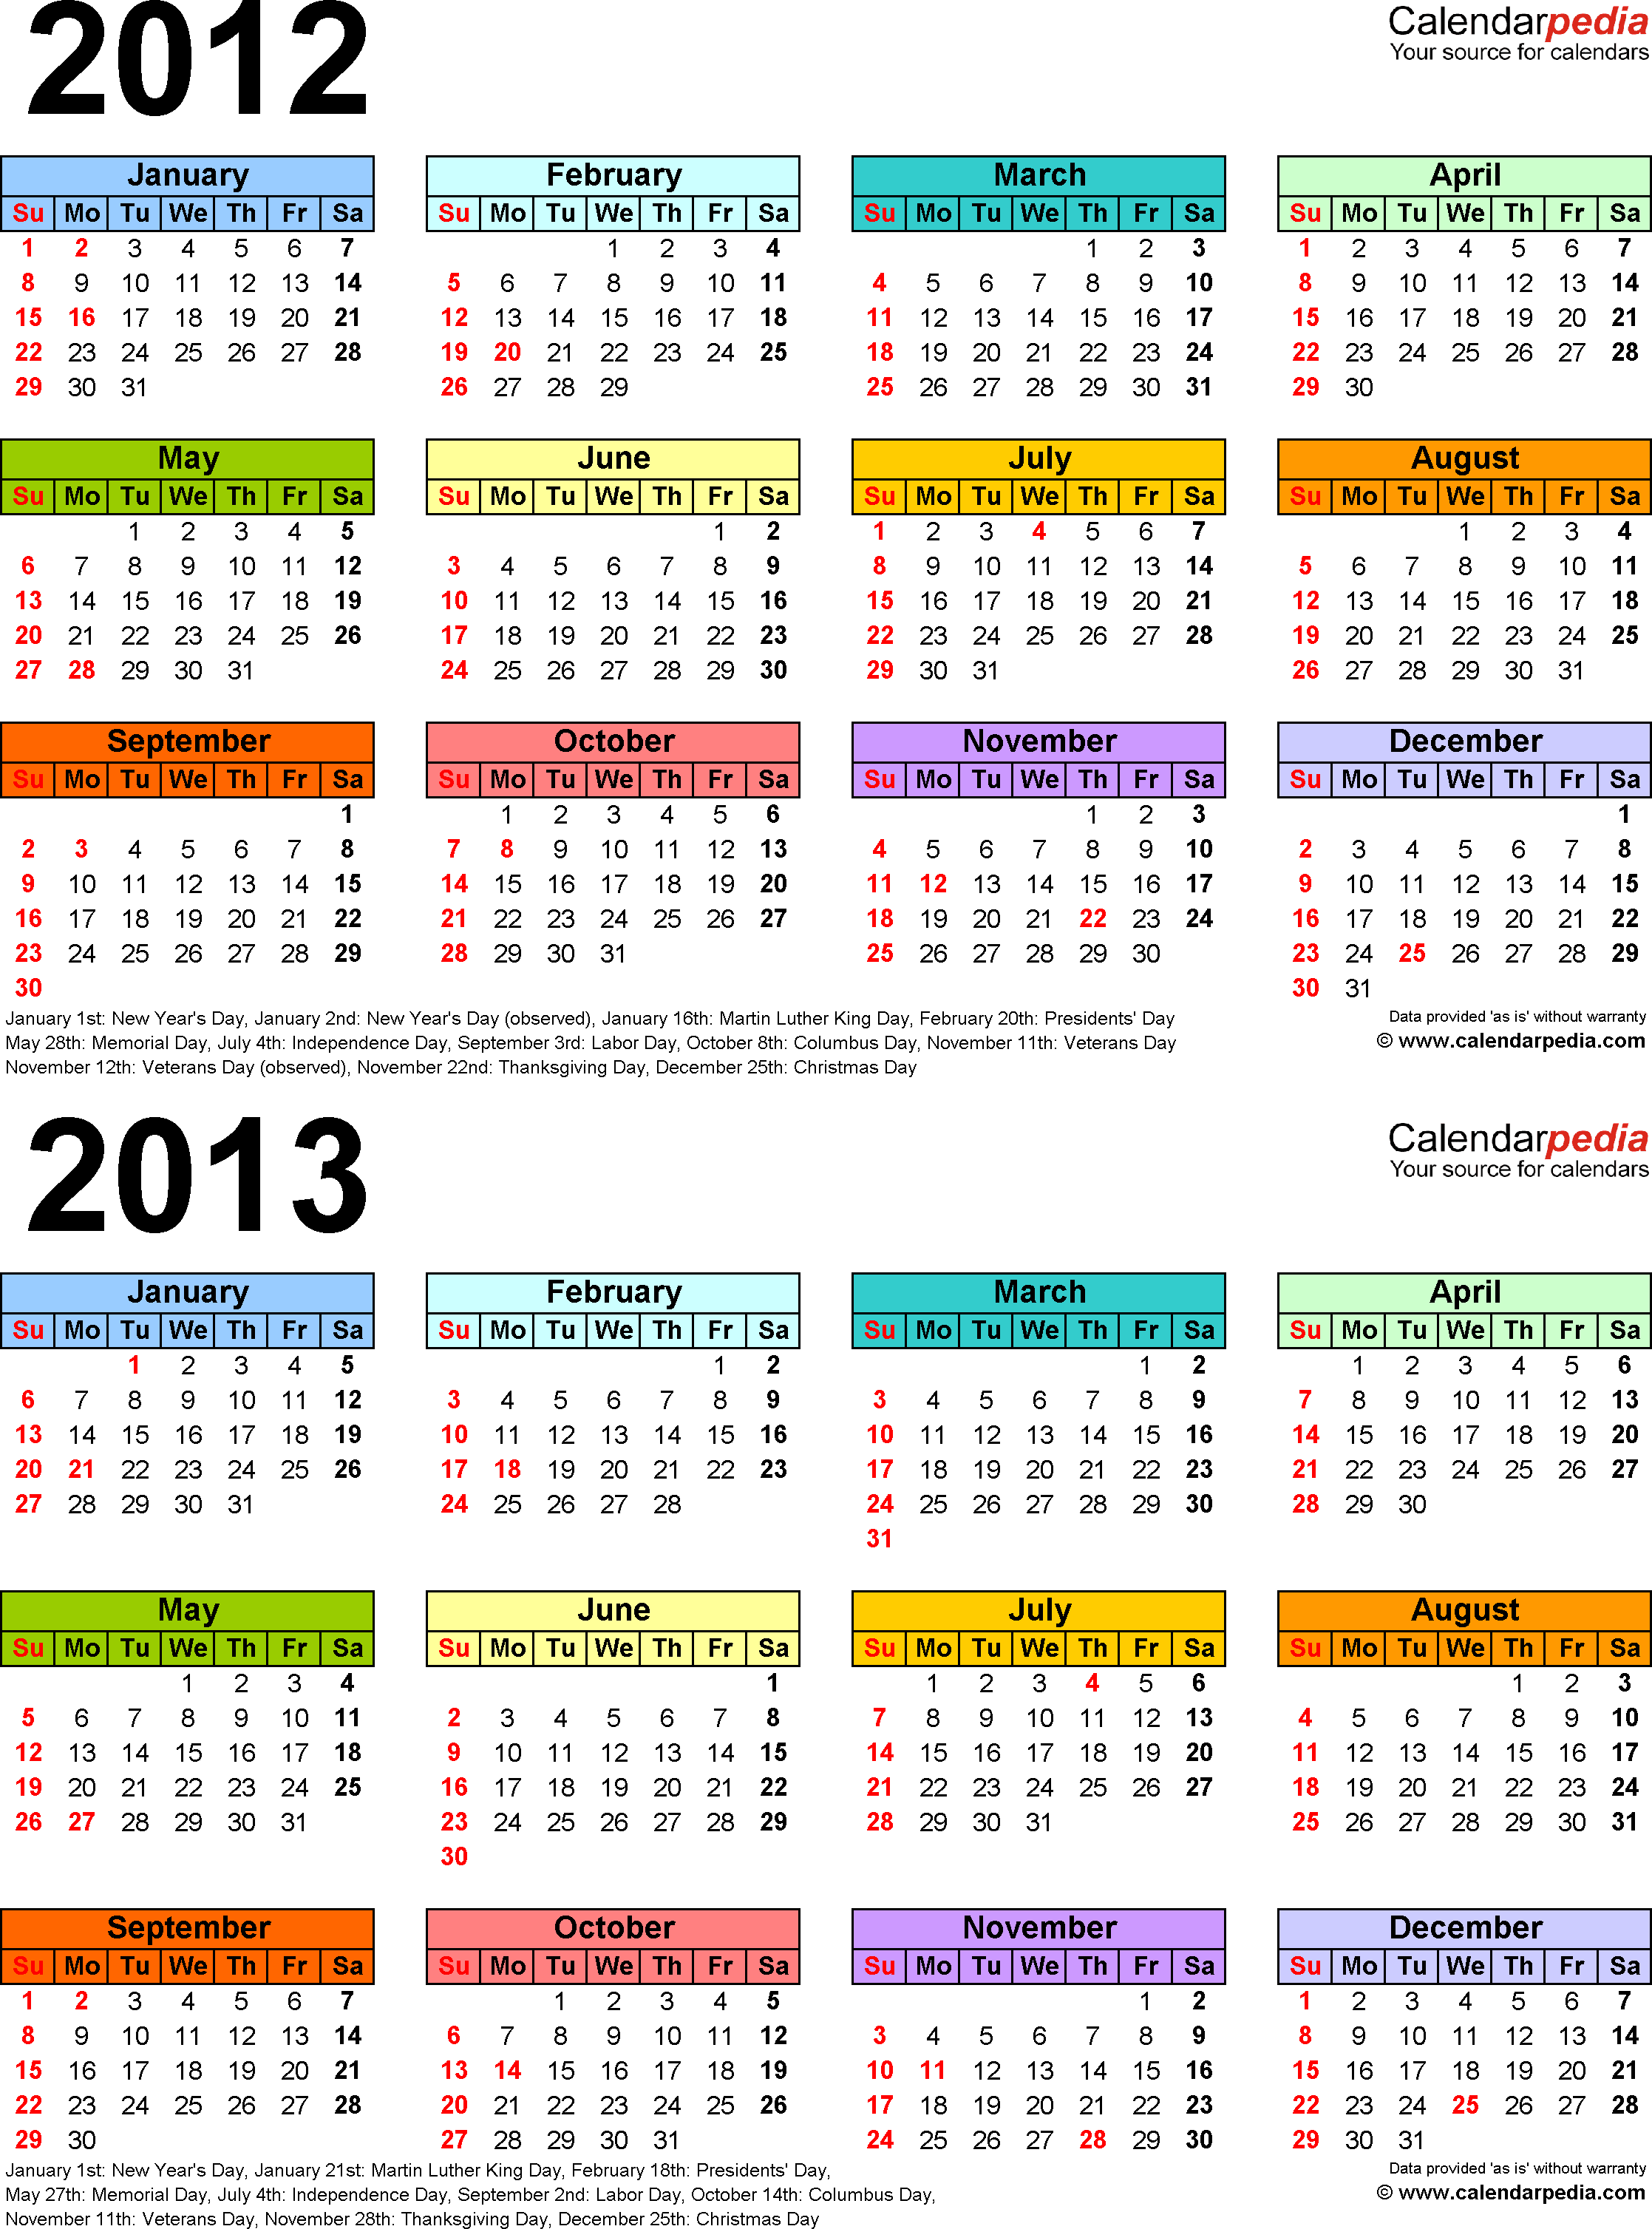 Template 3: PDF template for two year calendar 2012/2013 (portrait orientation, 1 page, multi-color)